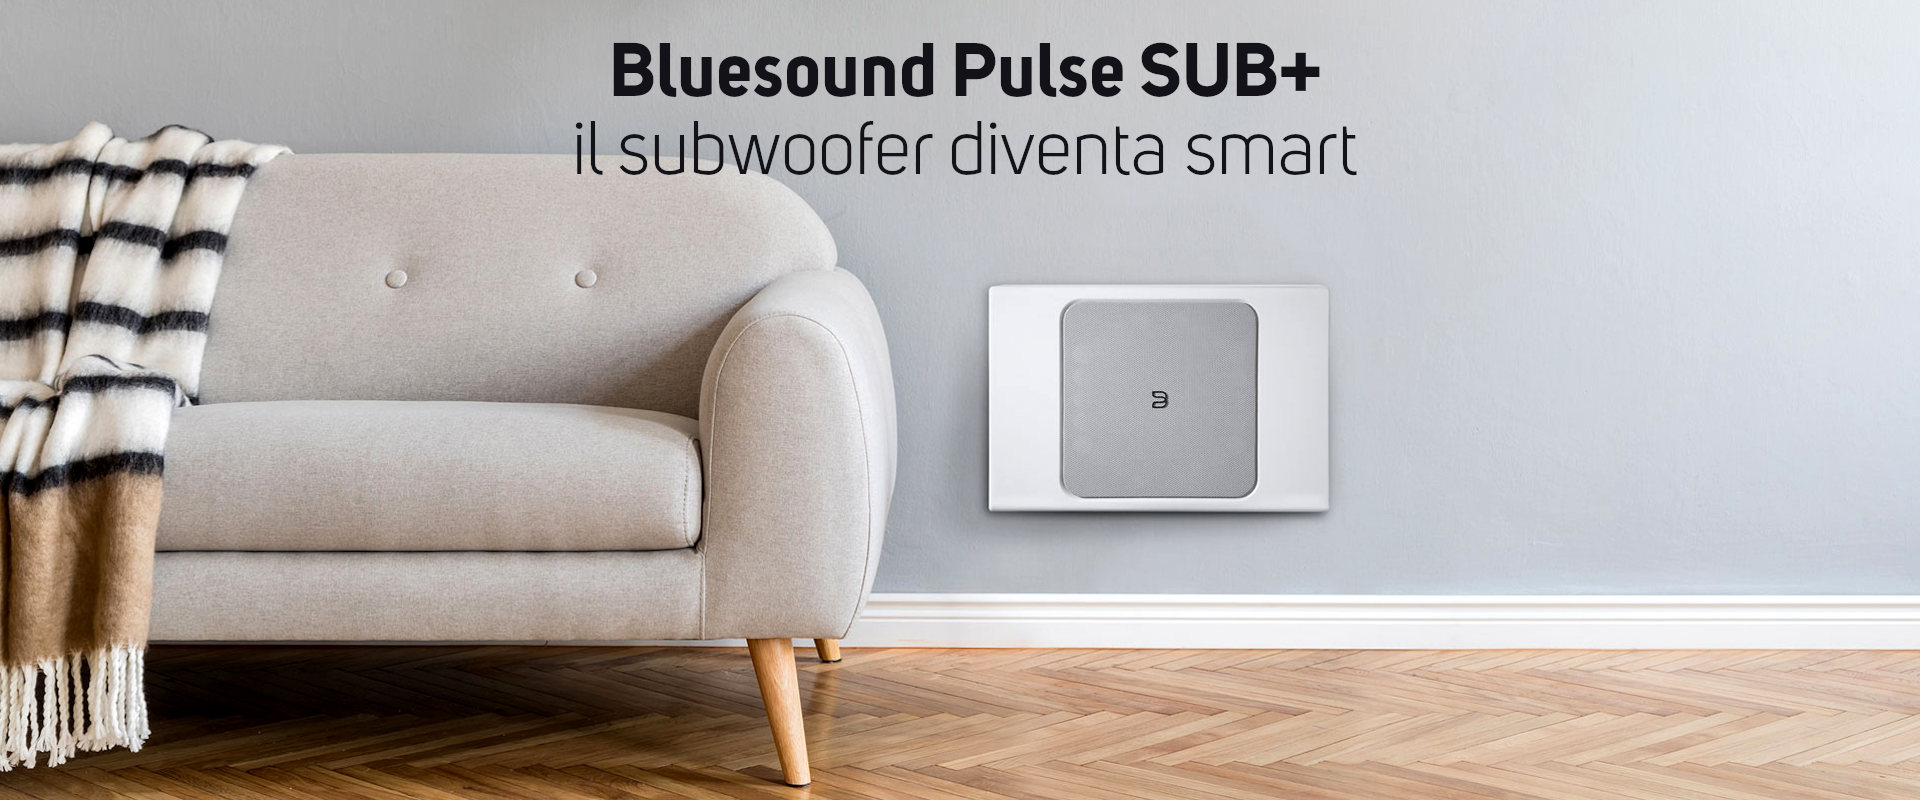 bluesound pulse sub plus